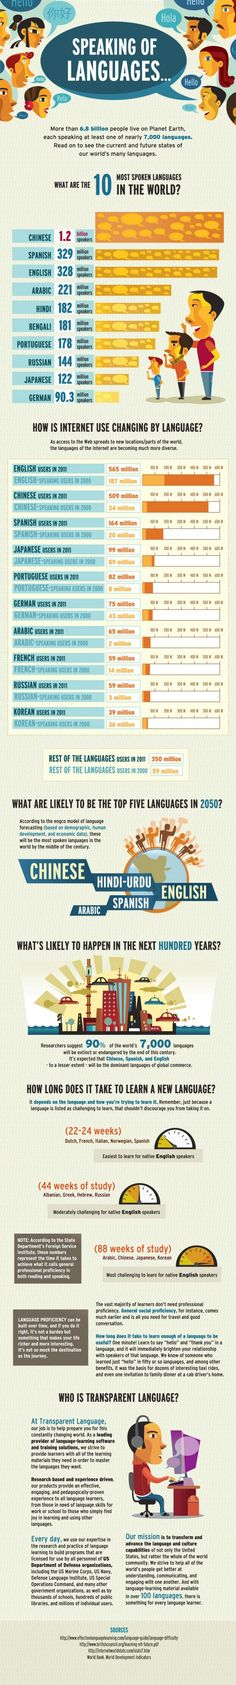 #Infographic Most Spoken #Languages in the World